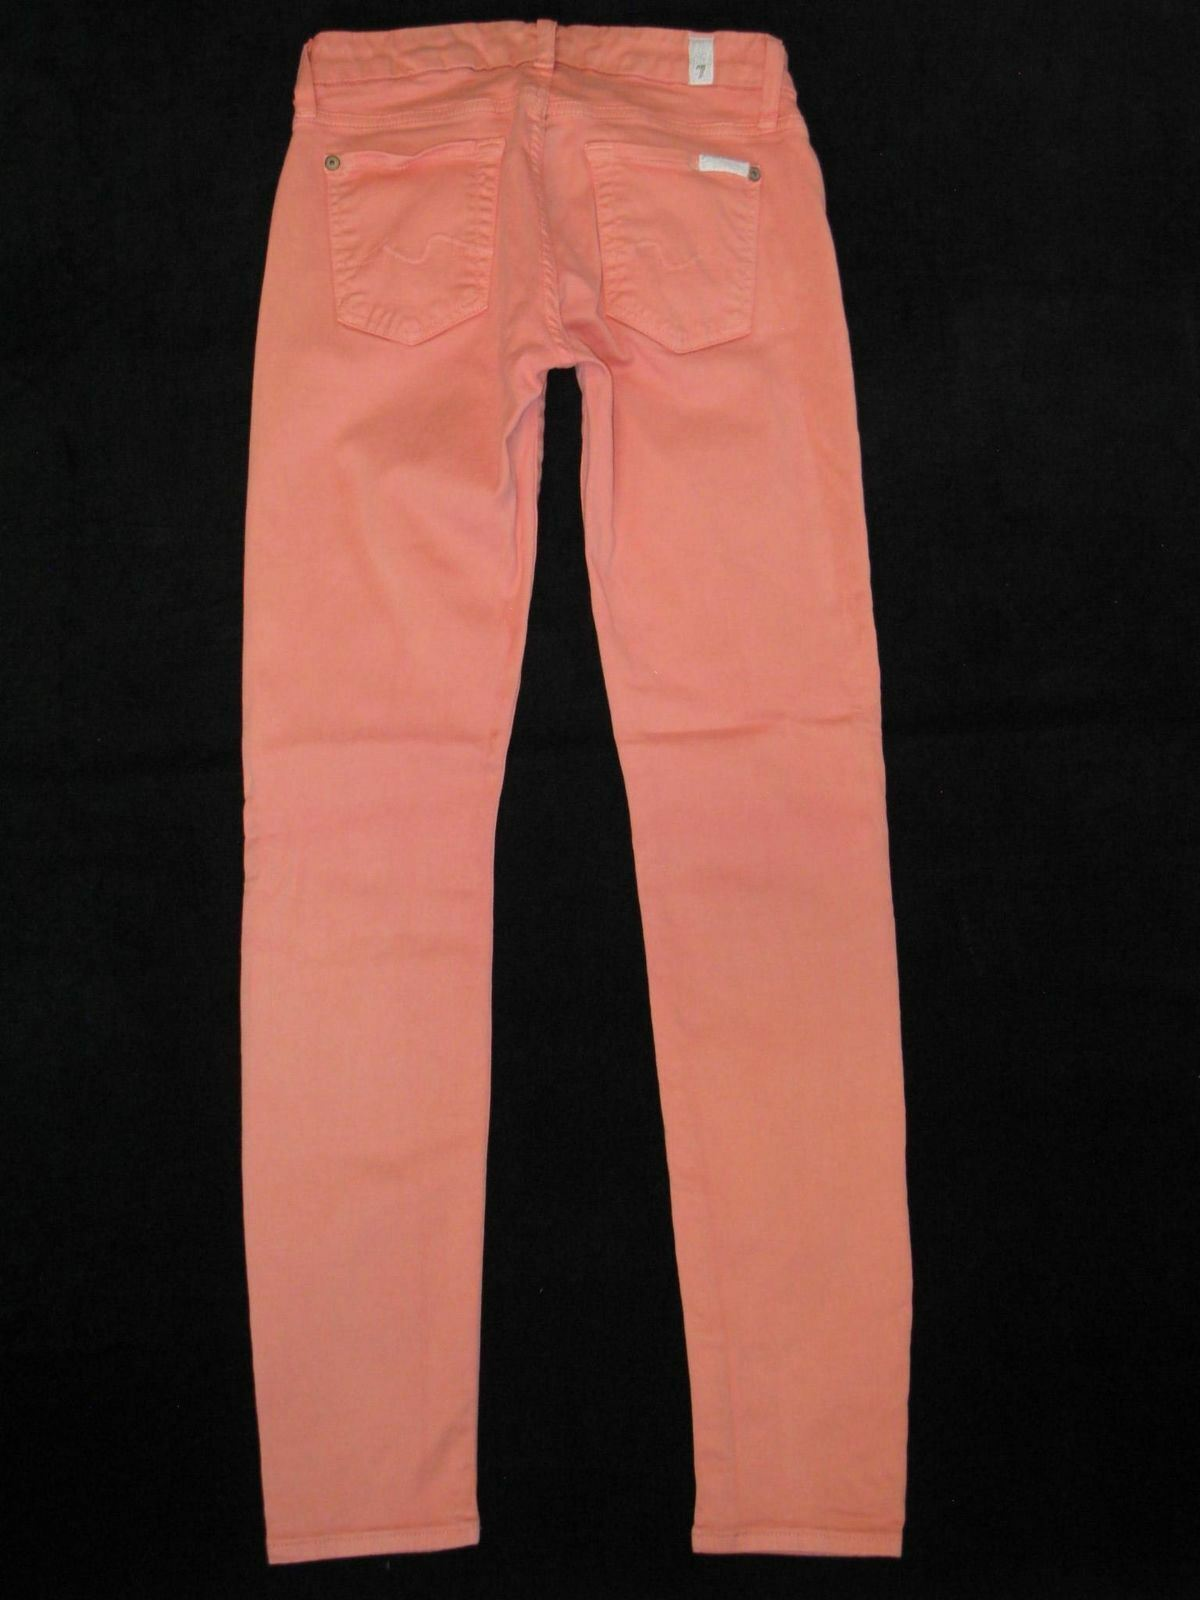 7 For All Mankind GWENEVERE SKINNY Jeans Sz 25  Coral   orange Stretchy